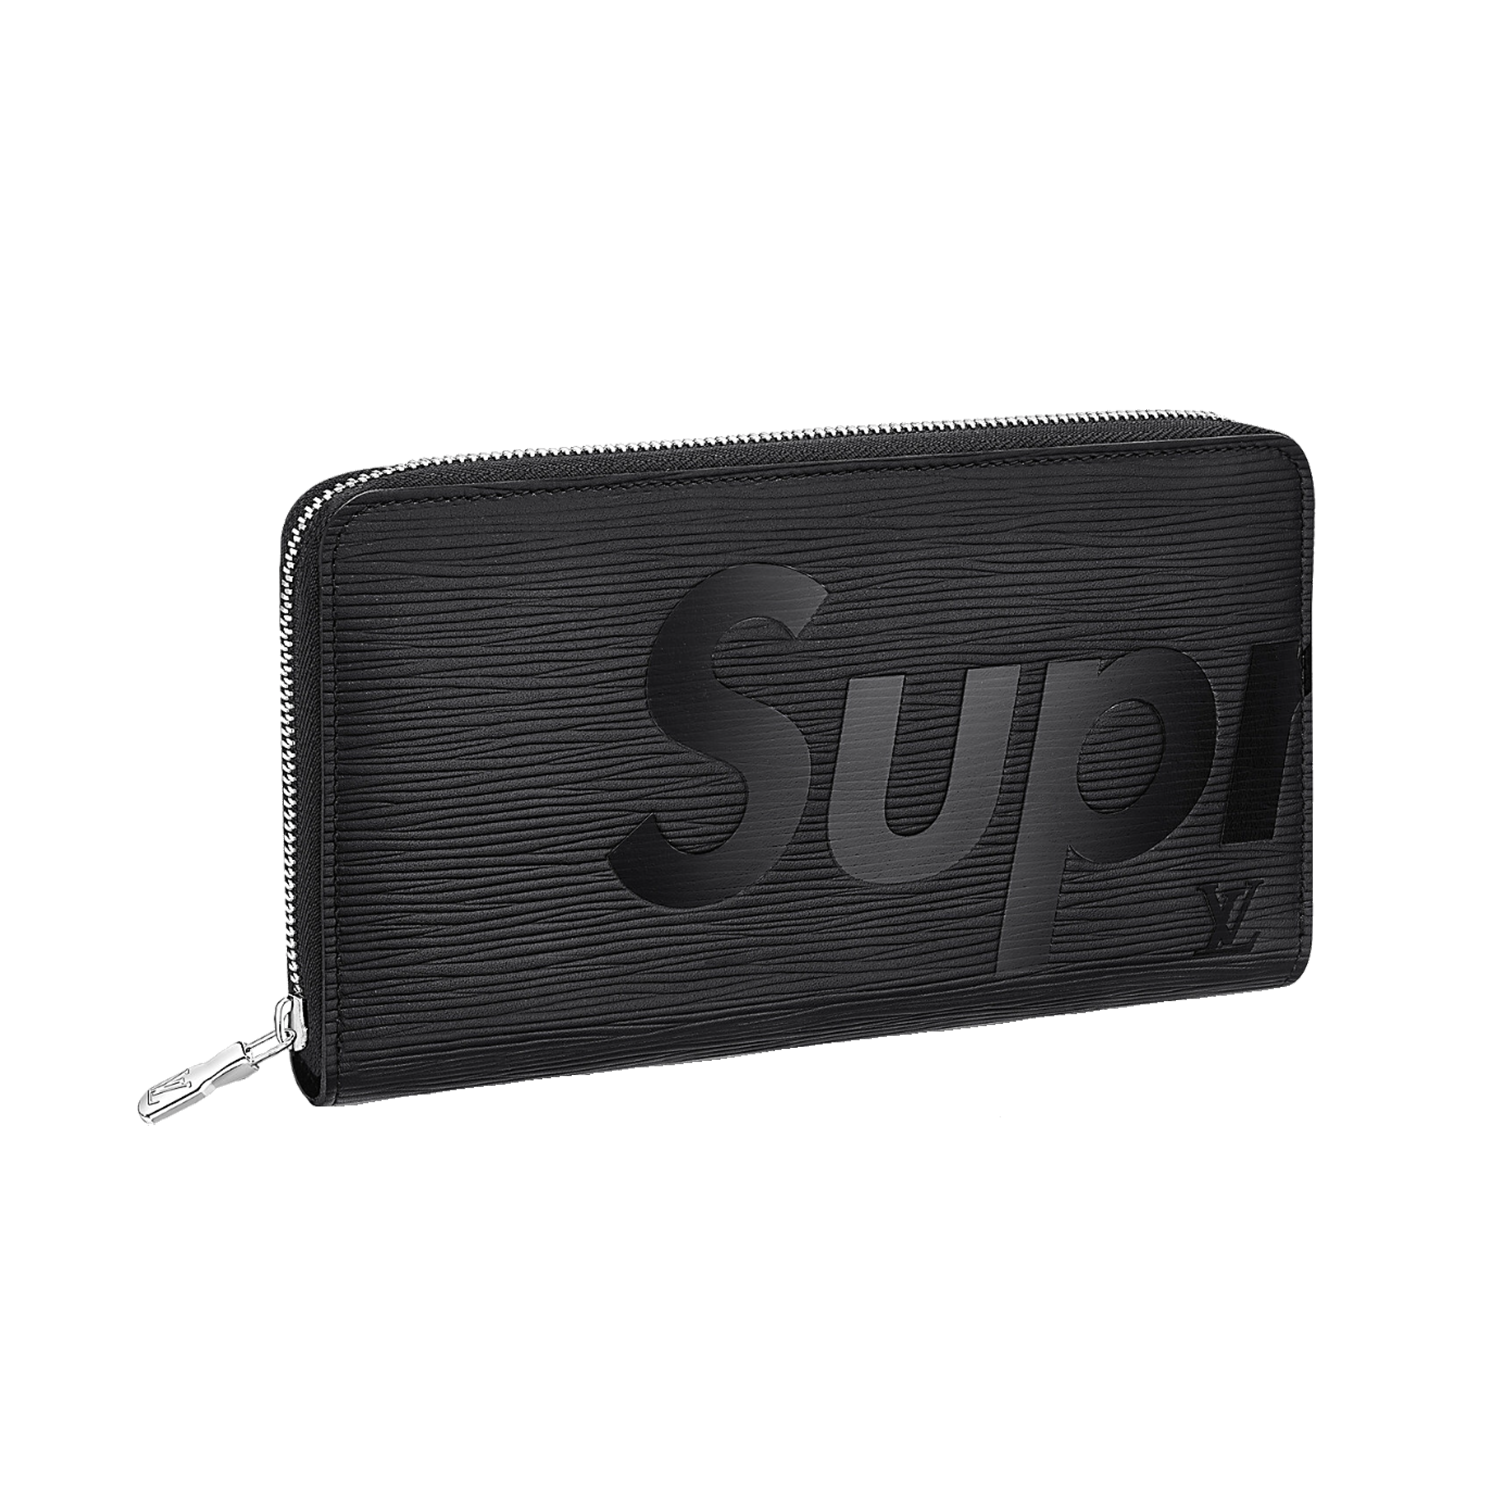 SUPREME ZIPPY ORGANIZER  - €855 $1270M67723EPI BLACK